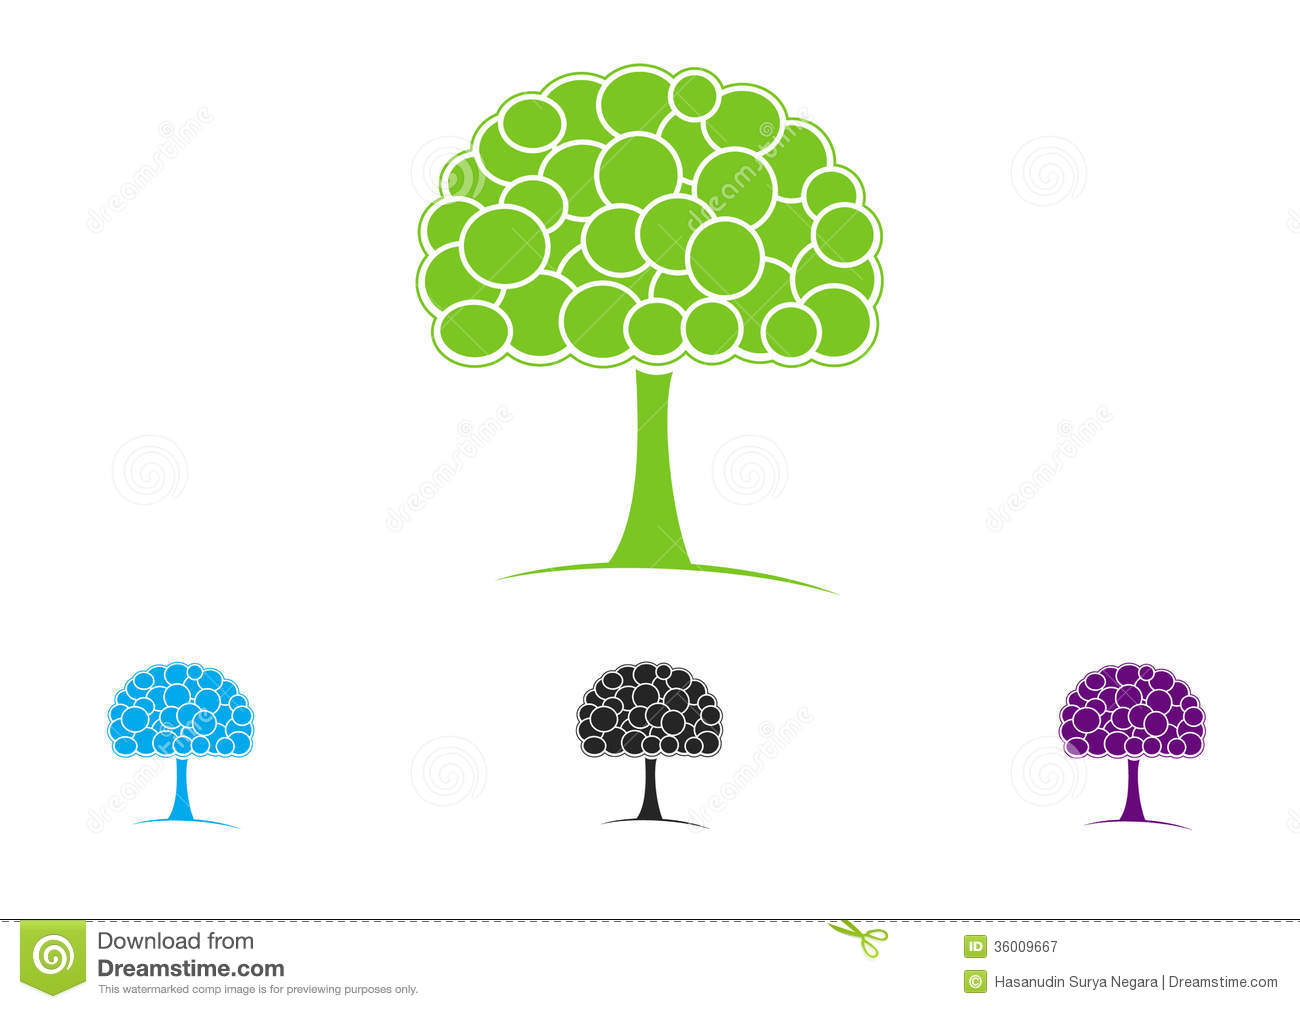 Trees clip art illustrations nature plants.